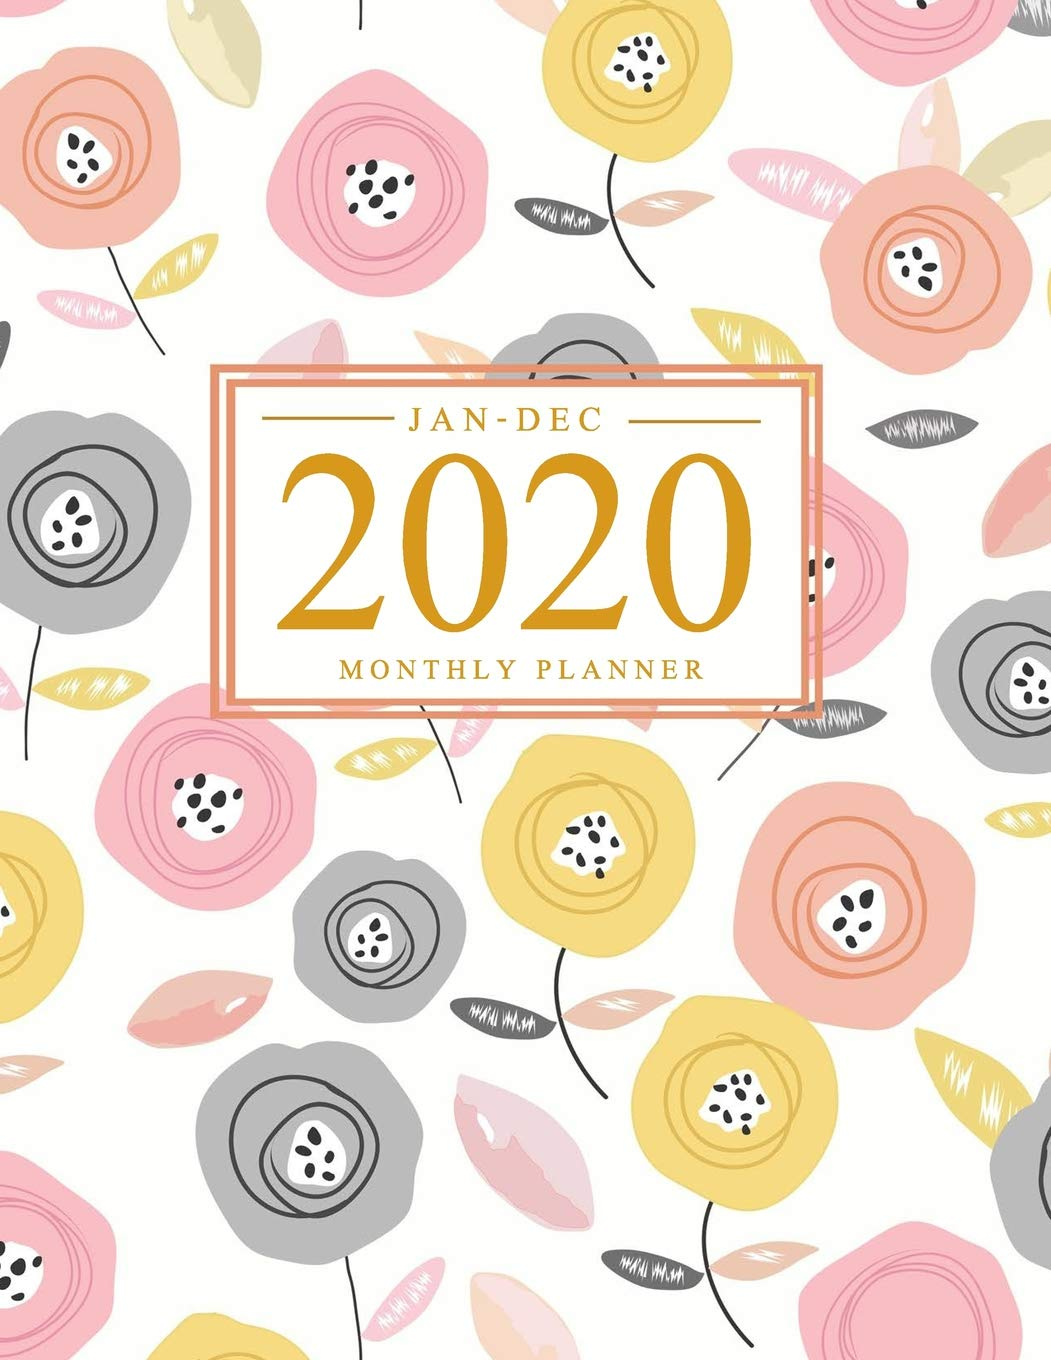 2020 Monthly Planner Jan Dec 12 Months Calendar With Holiday Watercolor Floral Cover Daily Weekly And Monthly Planner To Do List Academic Student January 2020 Through December 2020 J Rosemary 9781077733732 Amazon Com Books